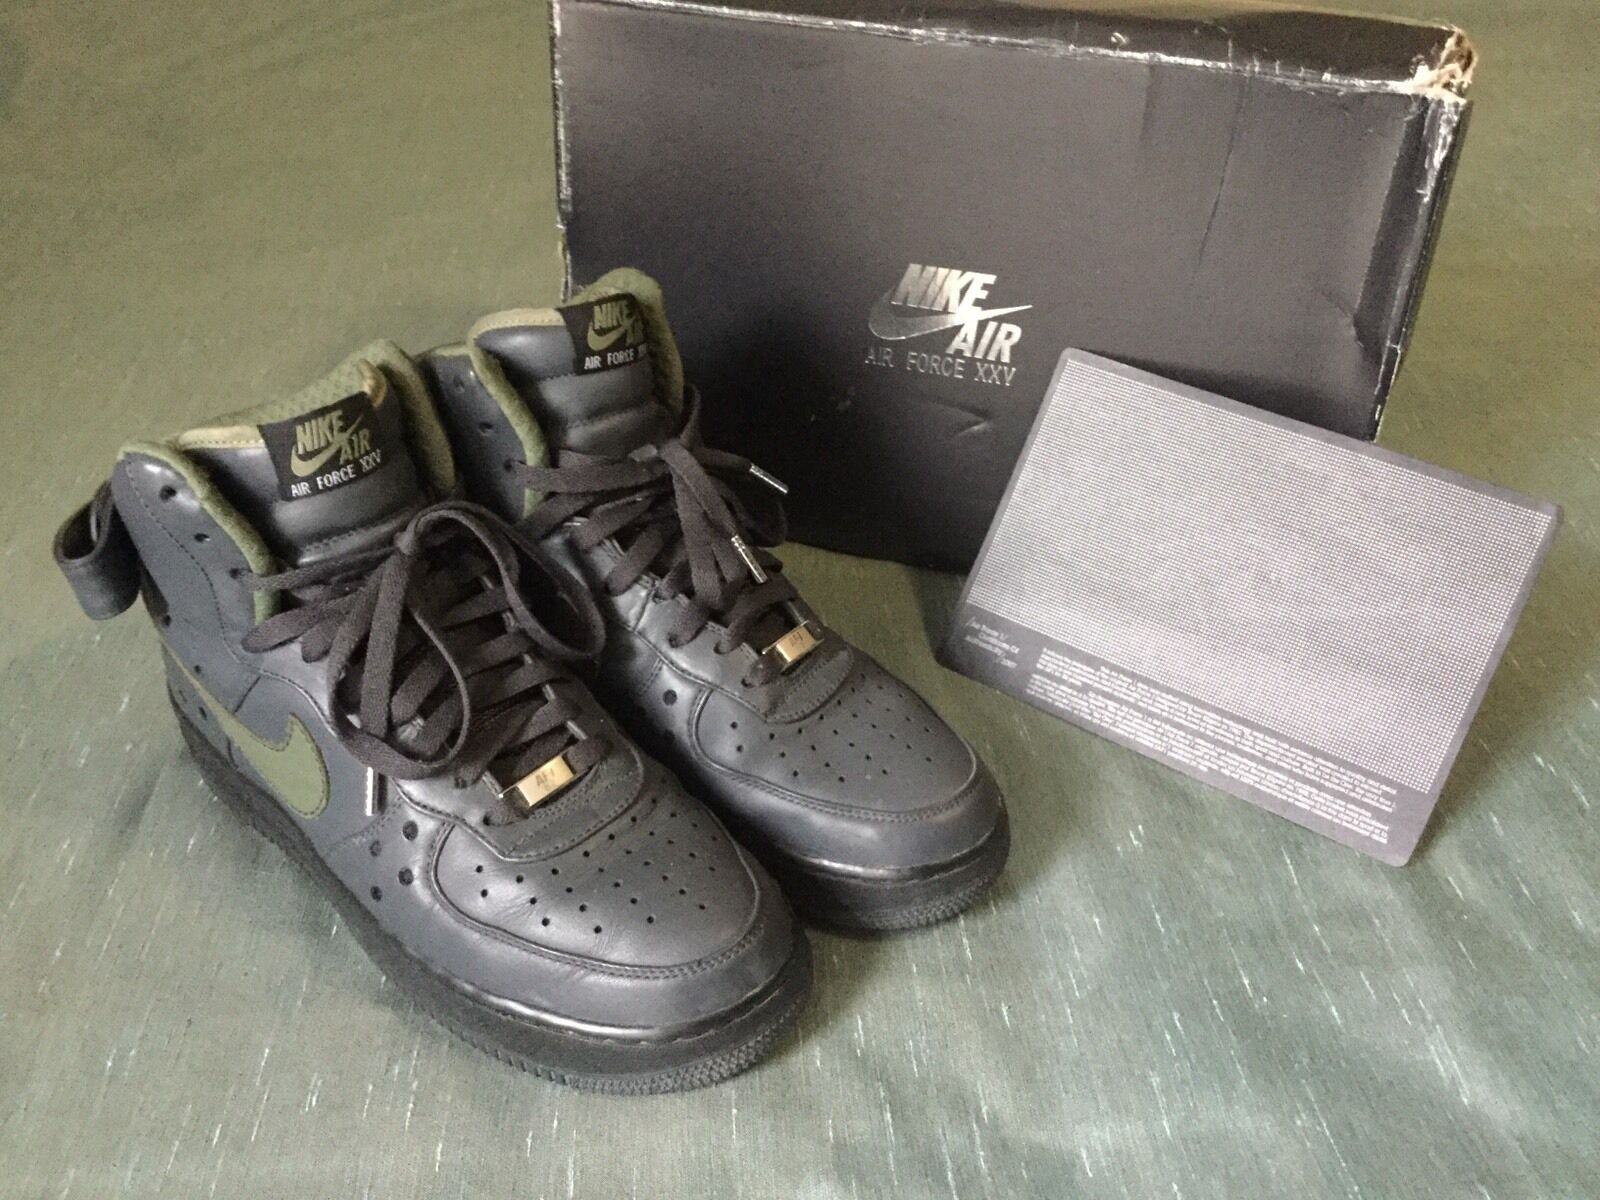 Nike Air Force 1 High Premium Charles Barkley Pack 317312-031 anthracite size 9